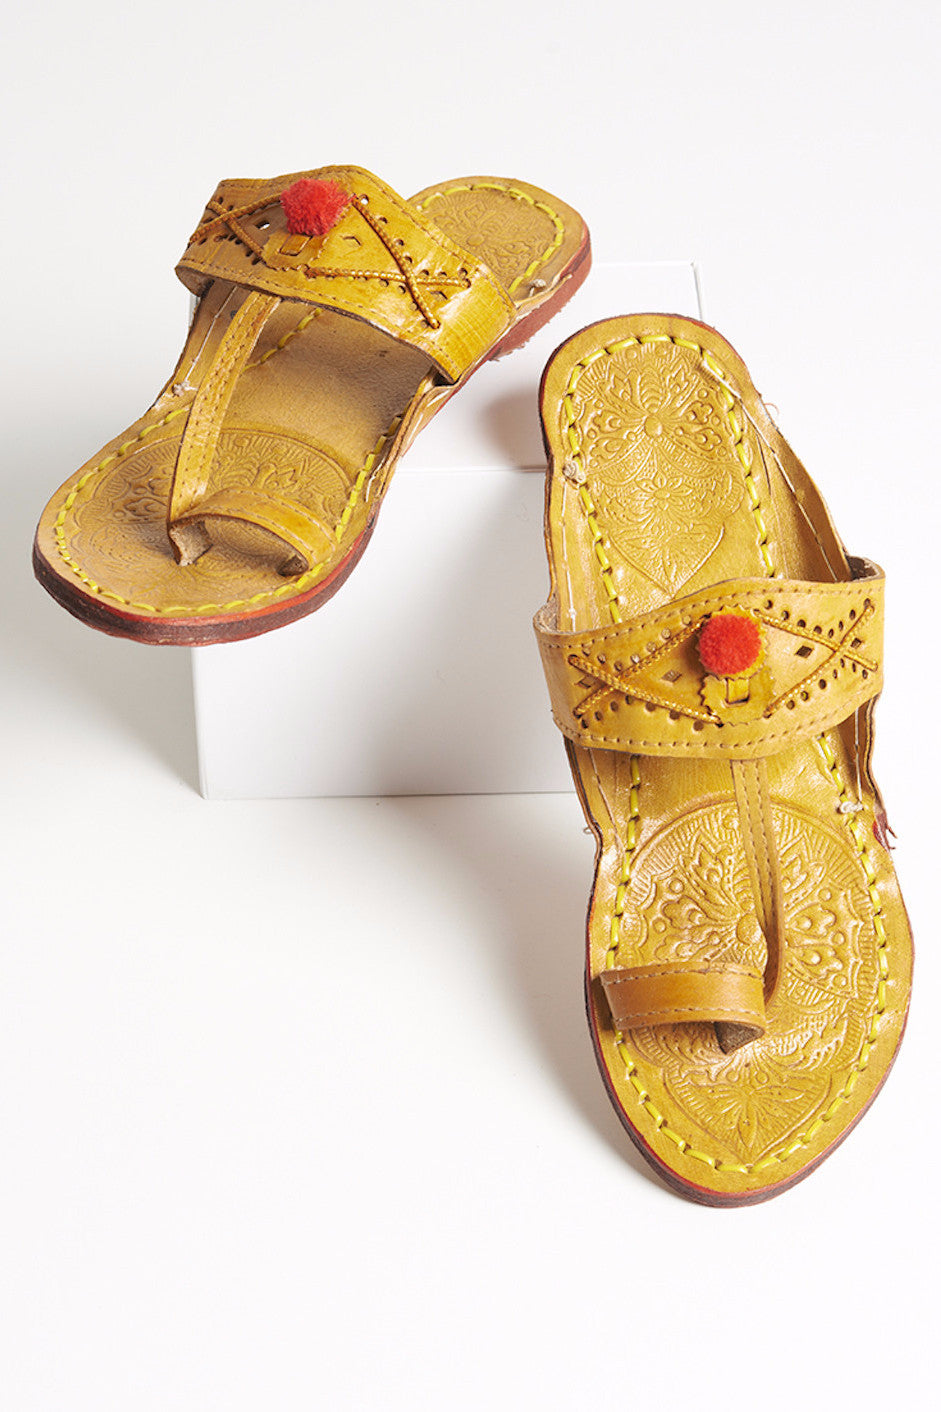 Tan Sandals with Red Pom Pom